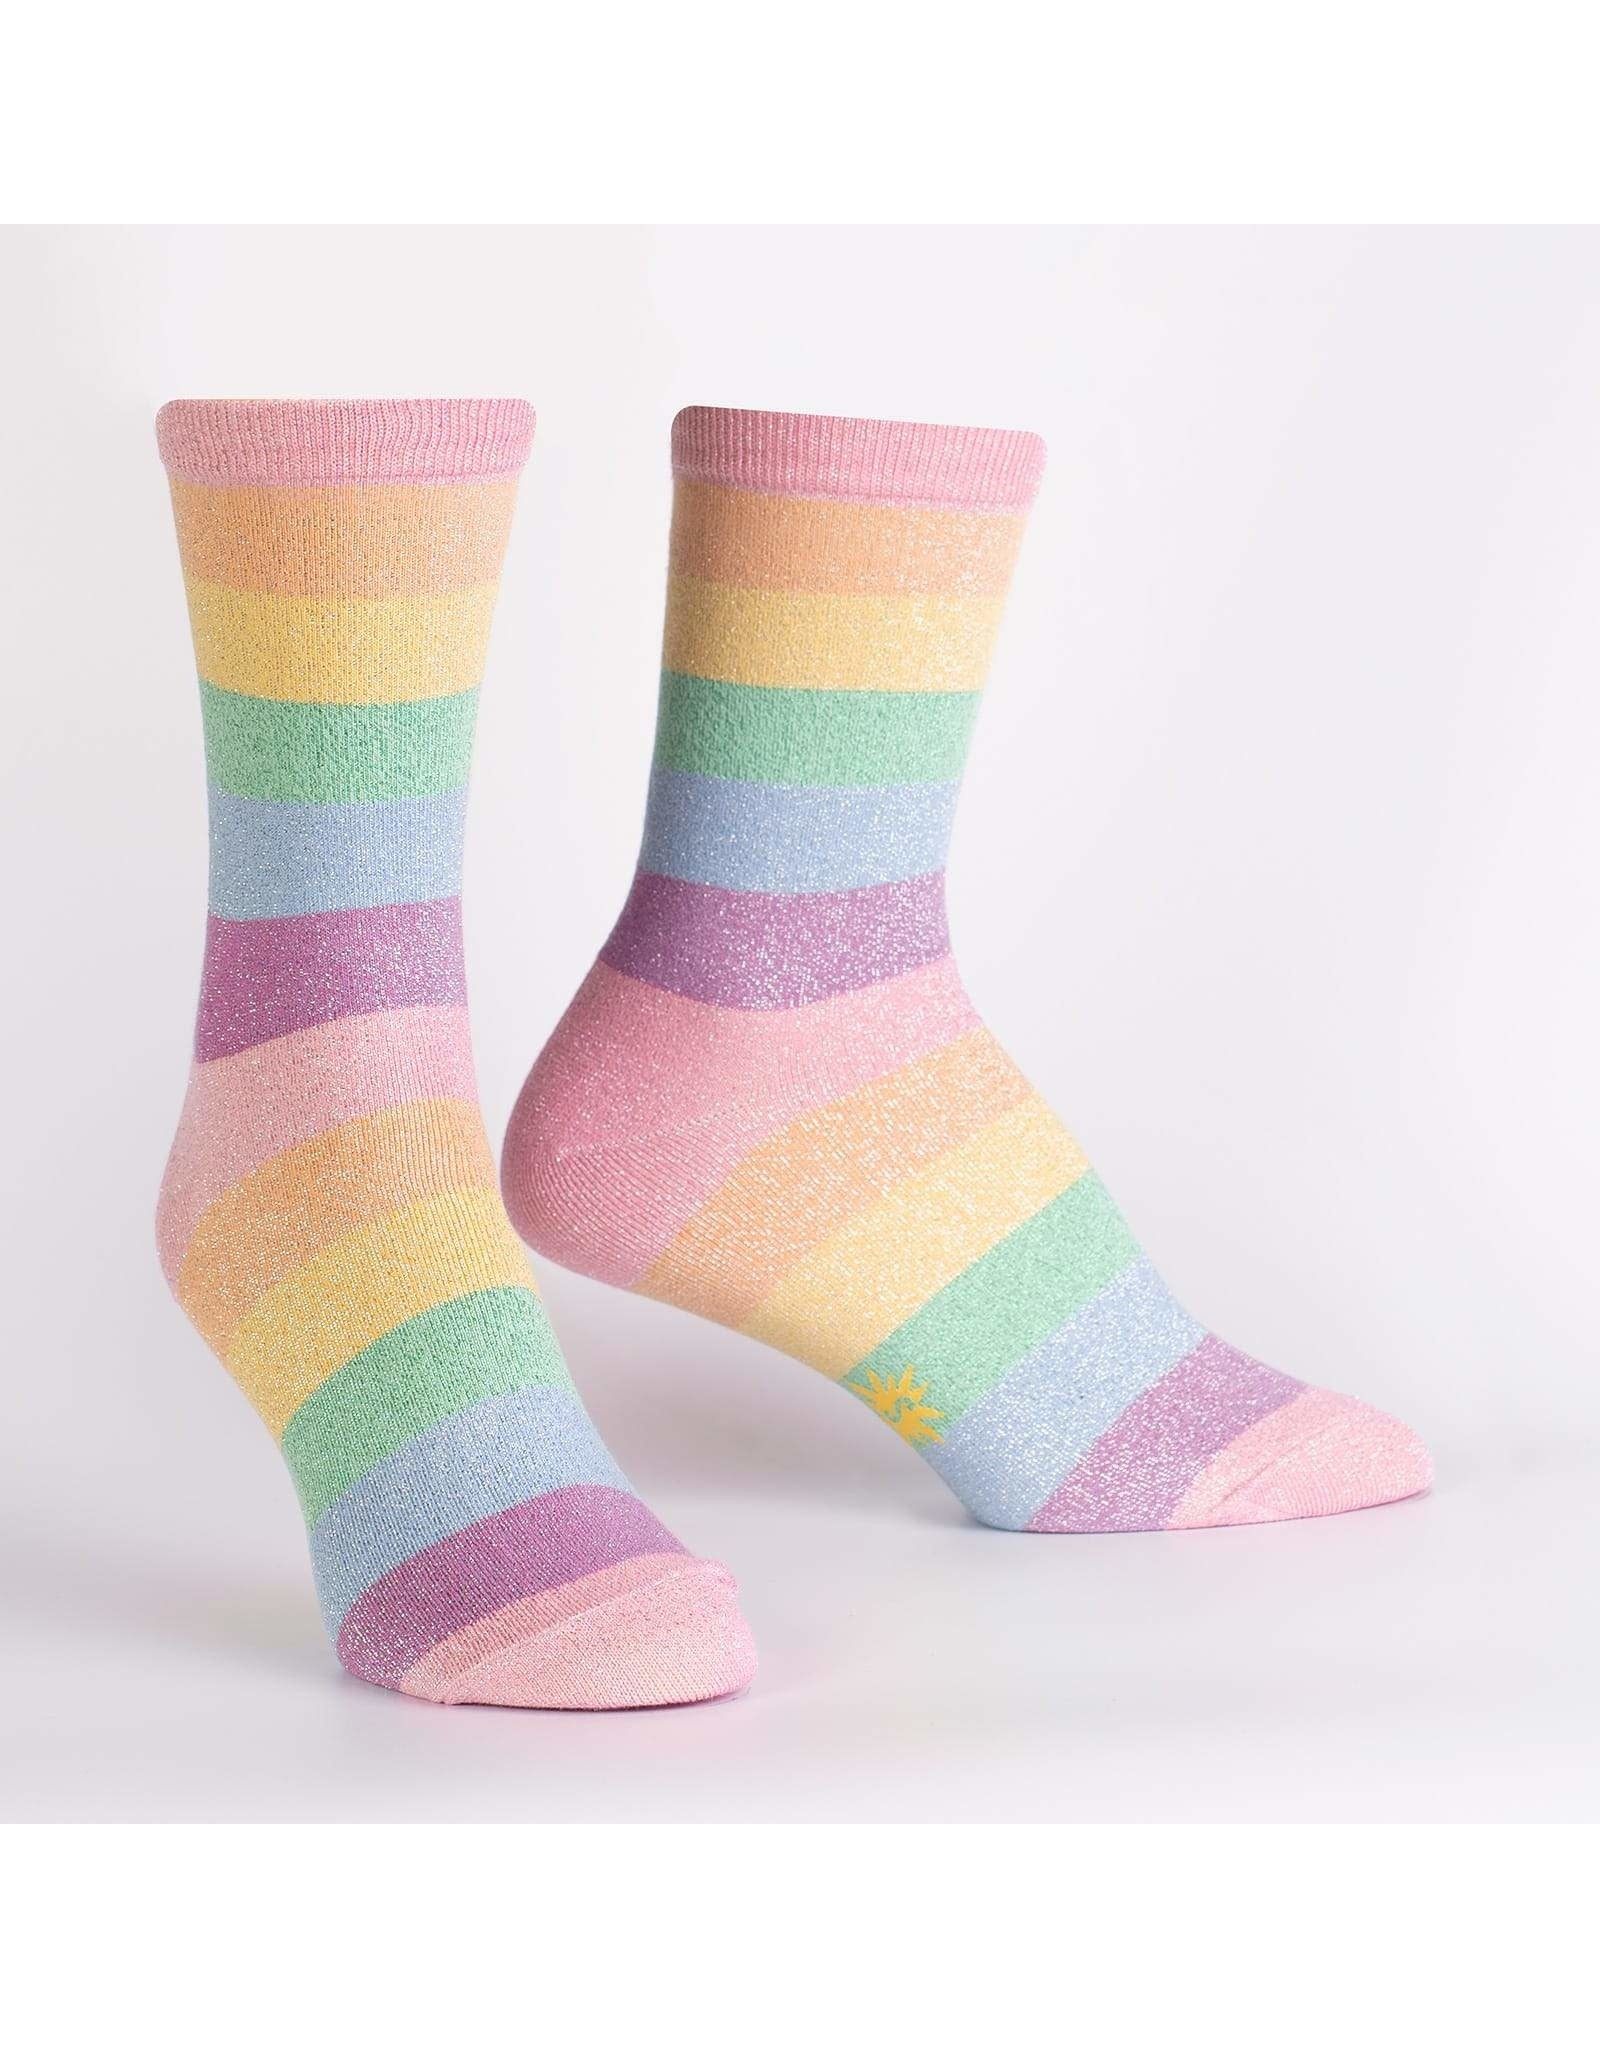 SOCK IT TO ME - Women's Pastel Prismatic Crew Socks